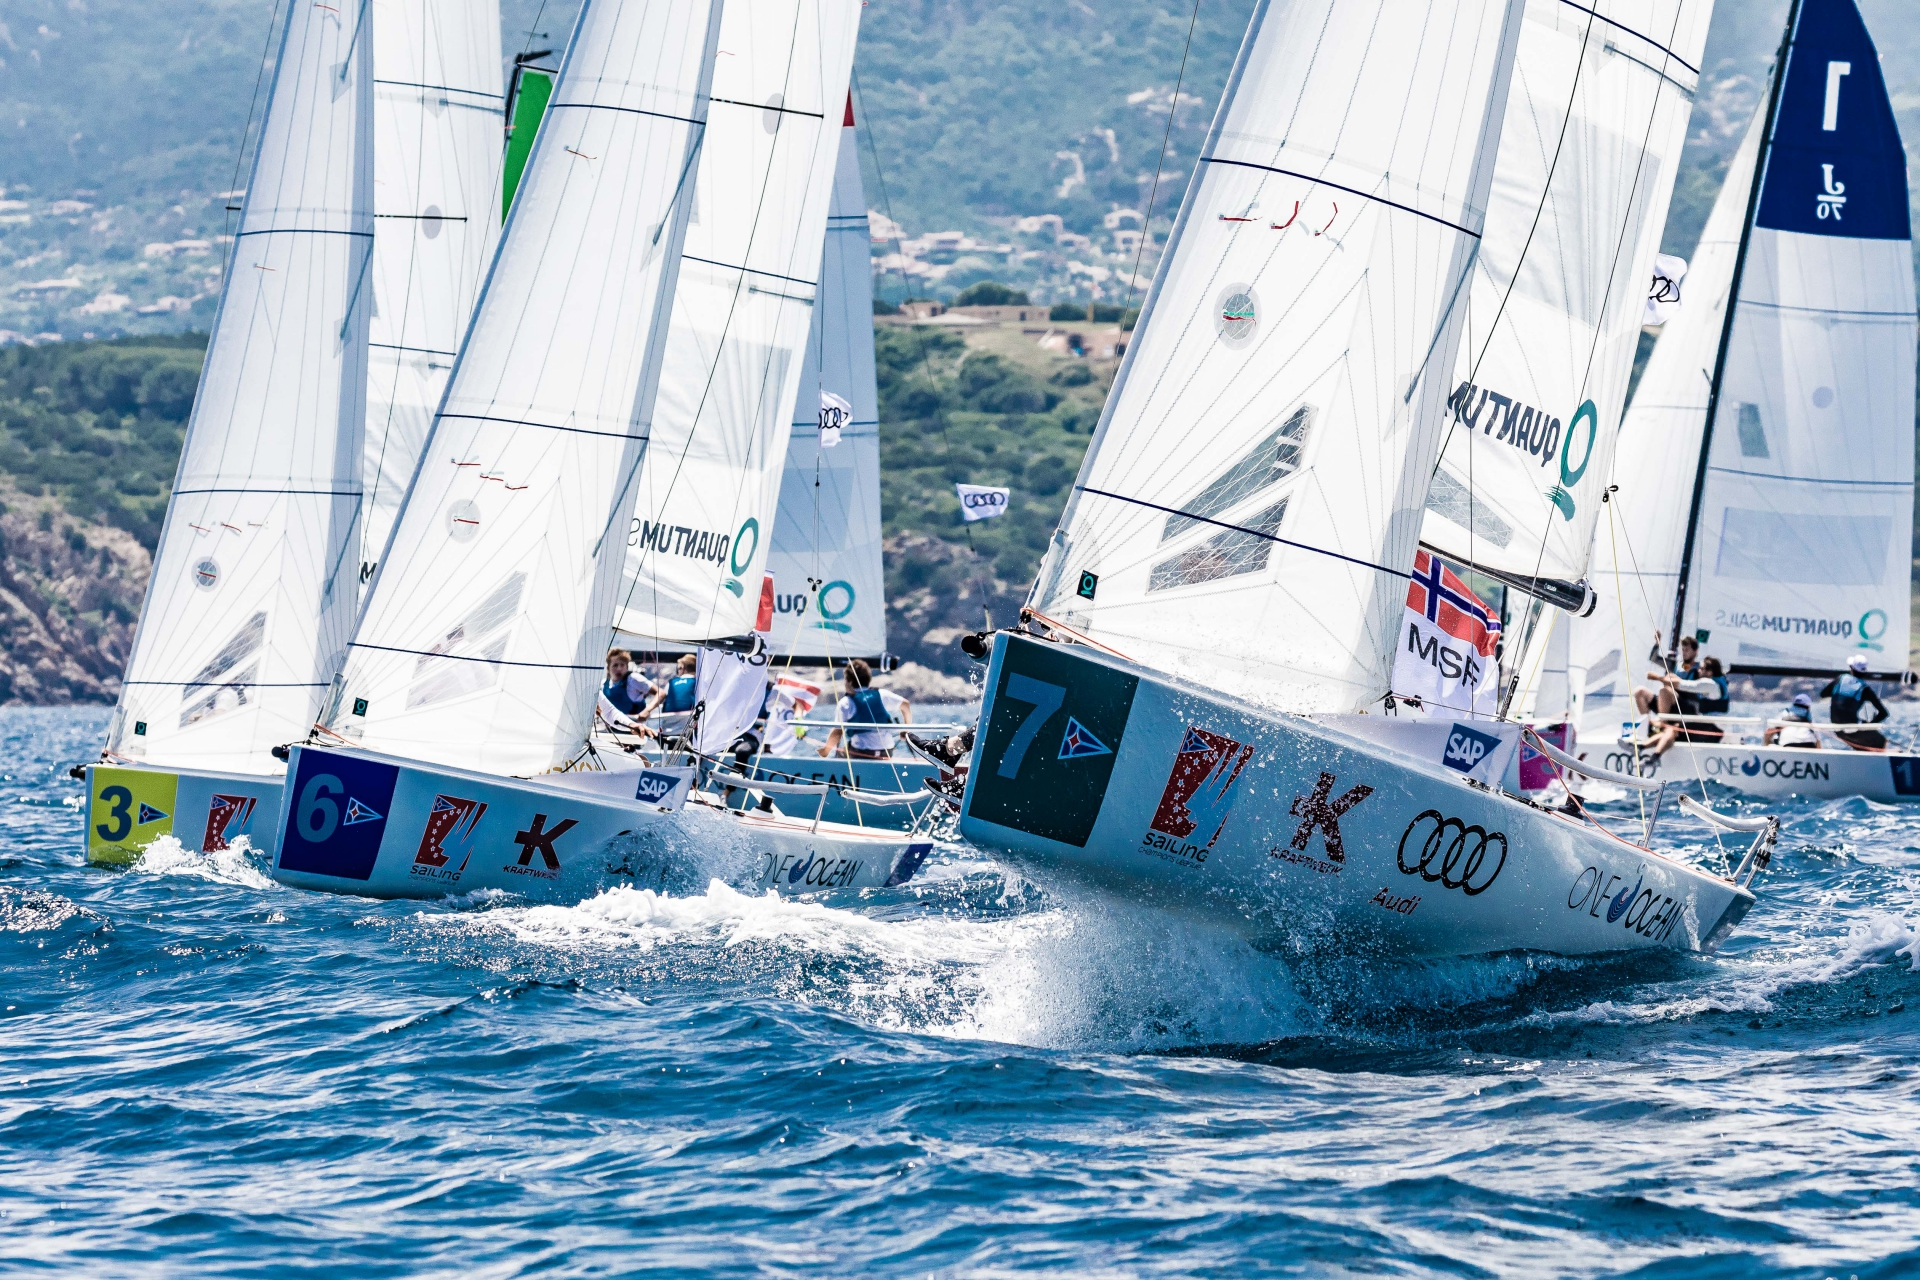 One Ocean SAILING Champions League starts tomorrow  - NEWS - Yacht Club Costa Smeralda